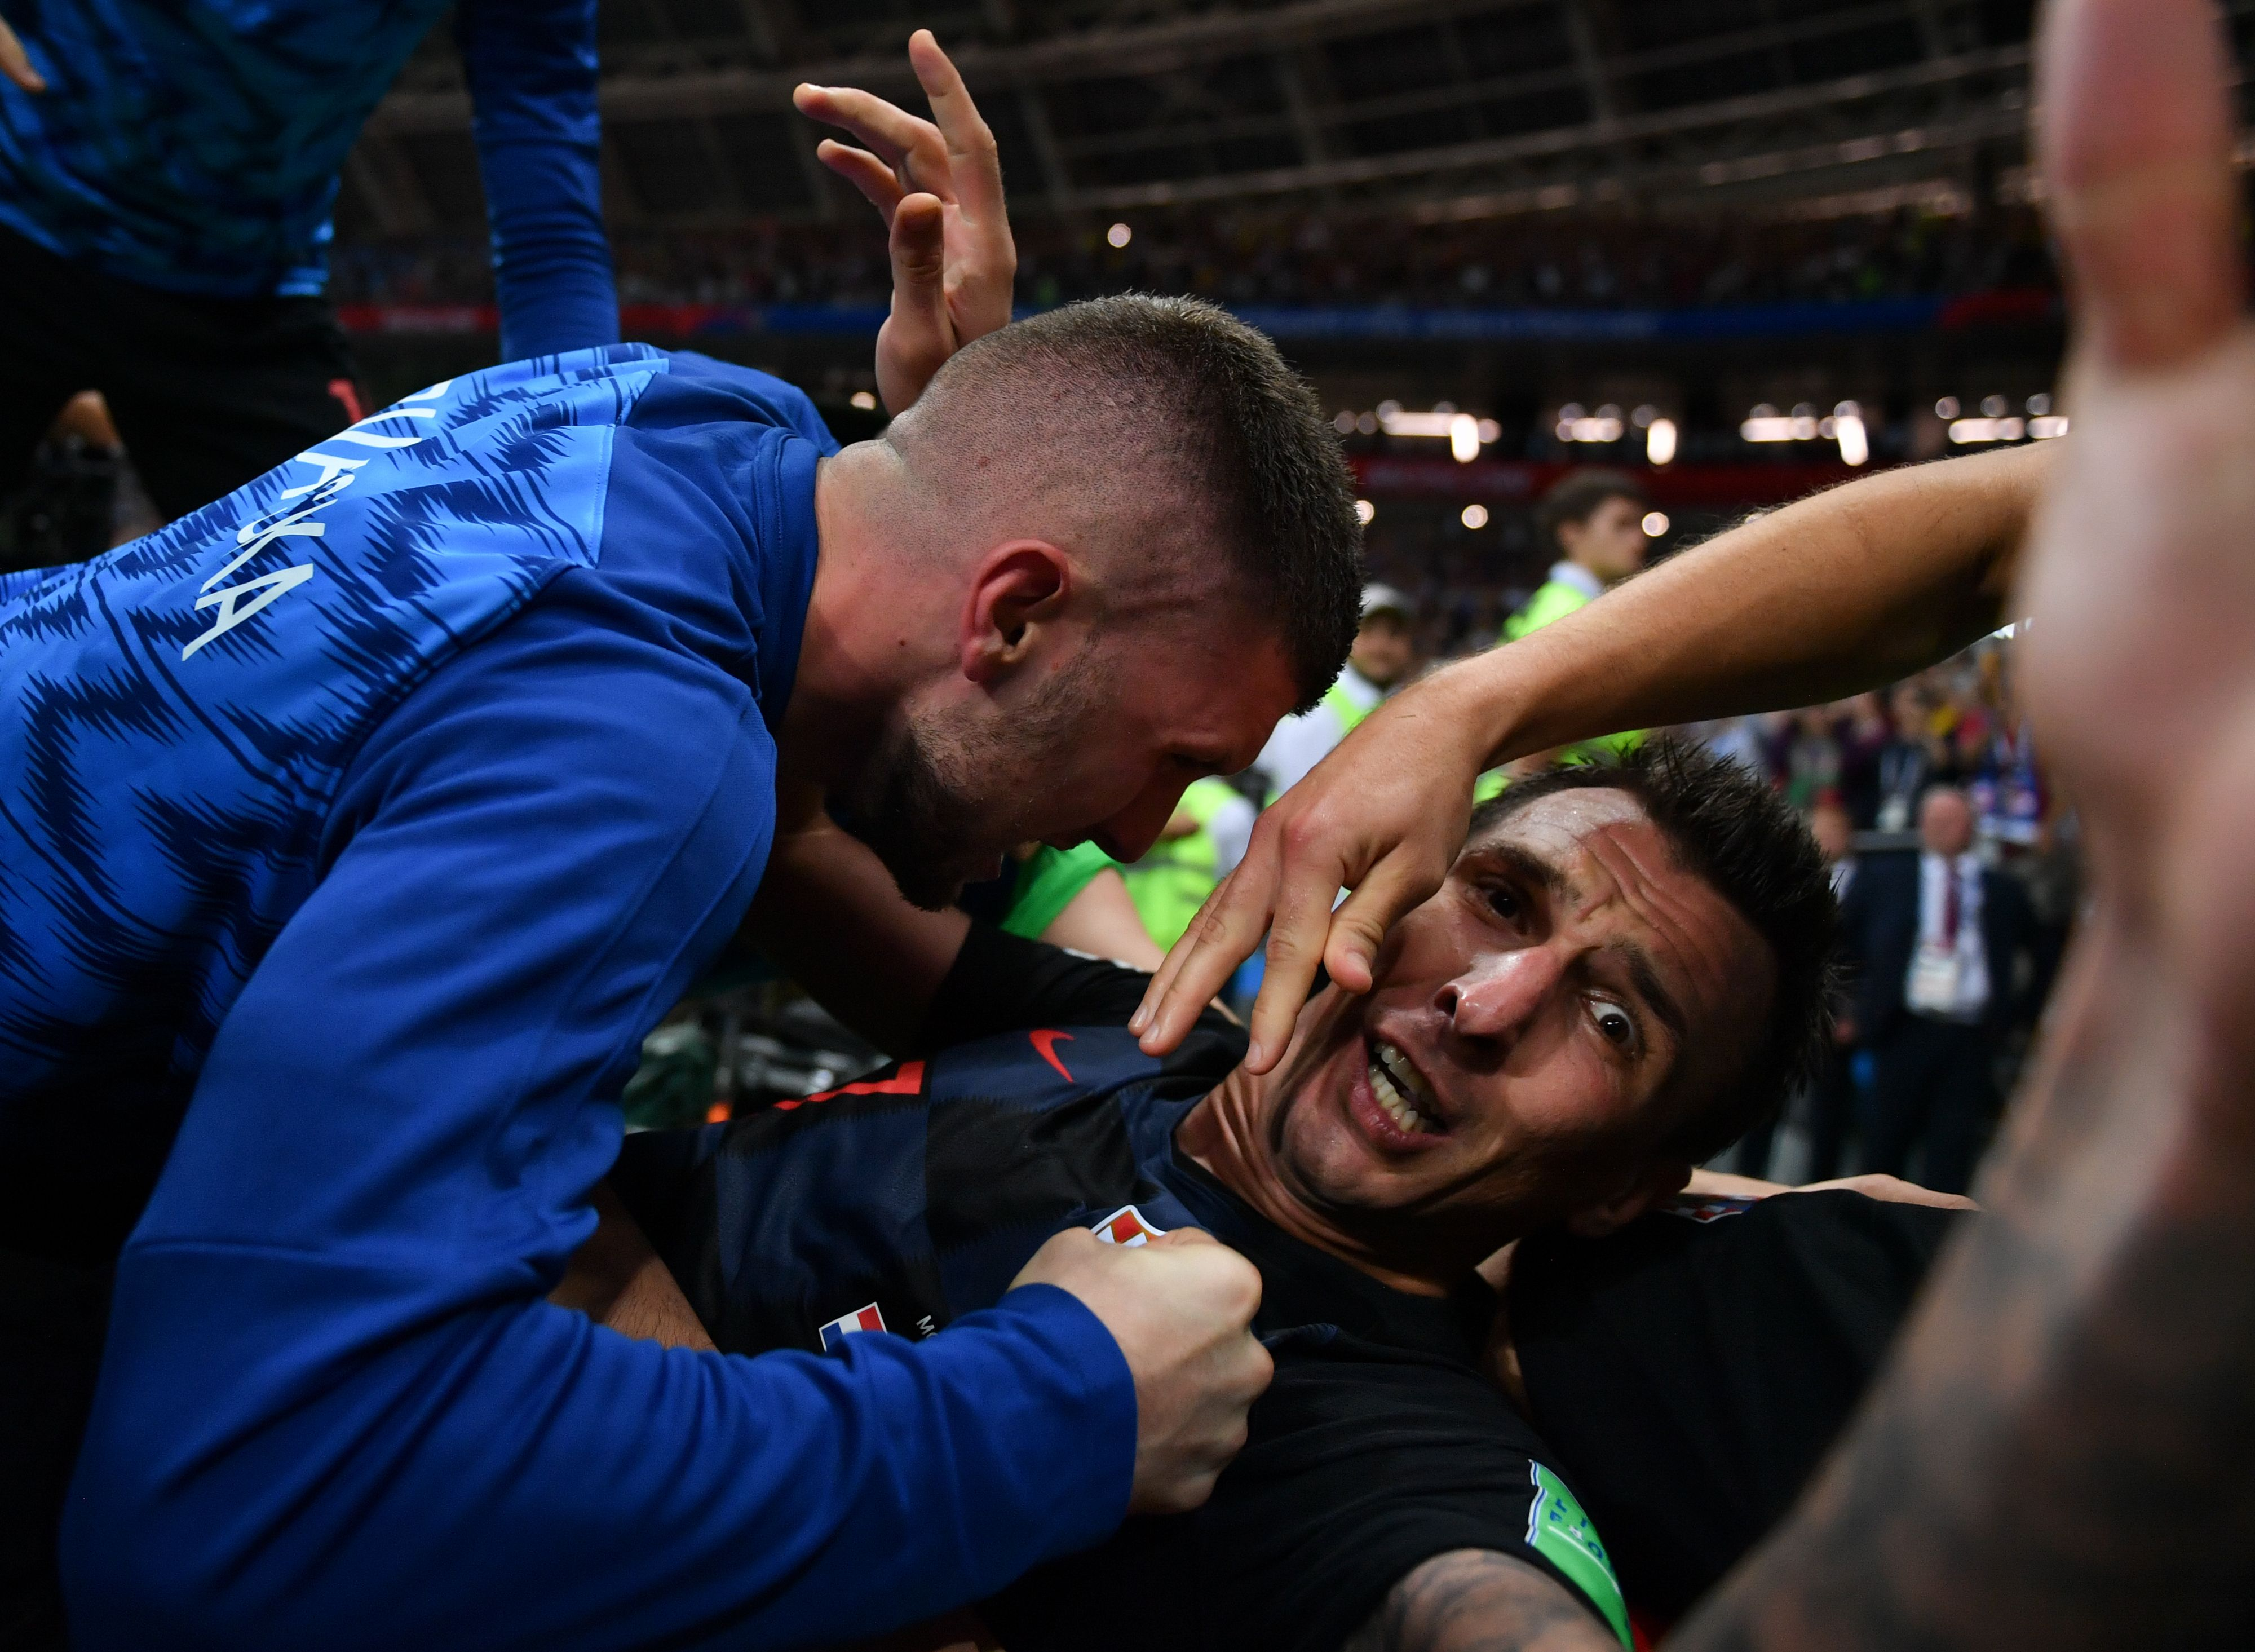 TOPSHOT - Croatia's forward Mario Mandzukic (C) celebrates with teammates after scoring his team's second goal during the Russia 2018 World Cup semi-final football match between Croatia and England at the Luzhniki Stadium in Moscow on July 11, 2018.